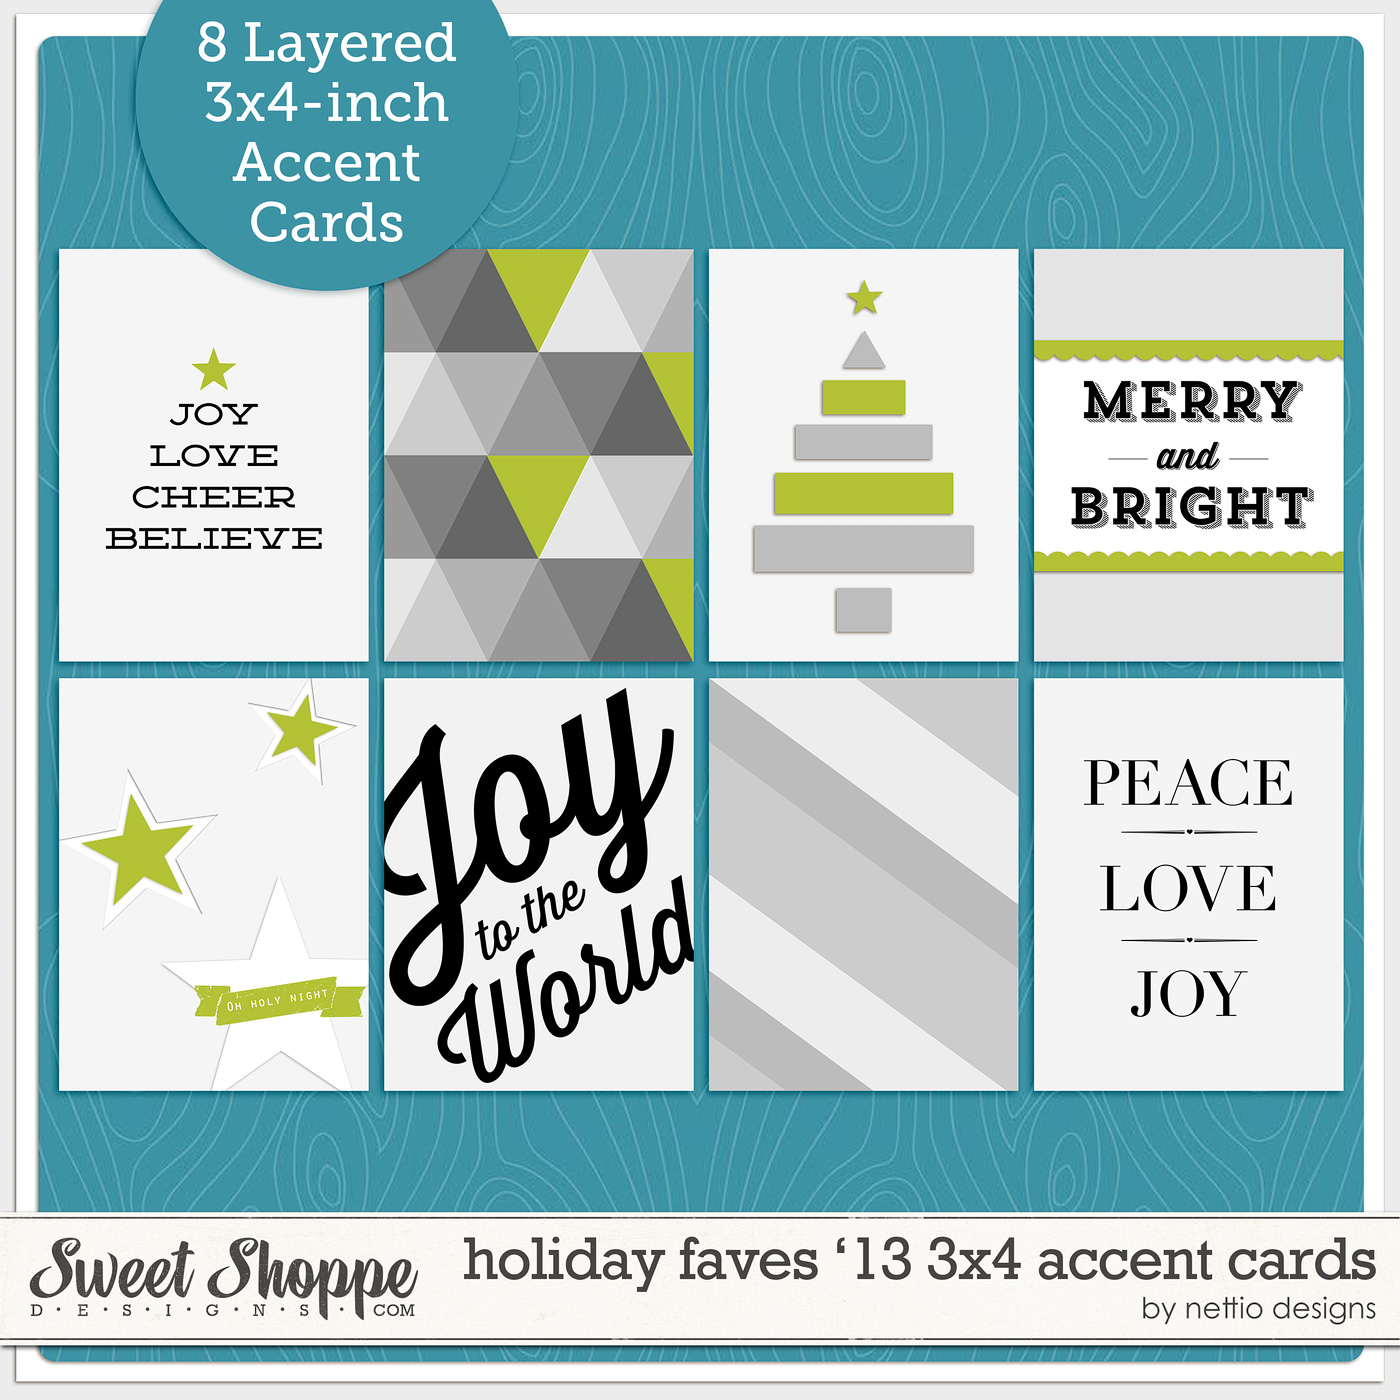 nettiodesigns_HolidayFaves13-3x4Cards-prev-1400